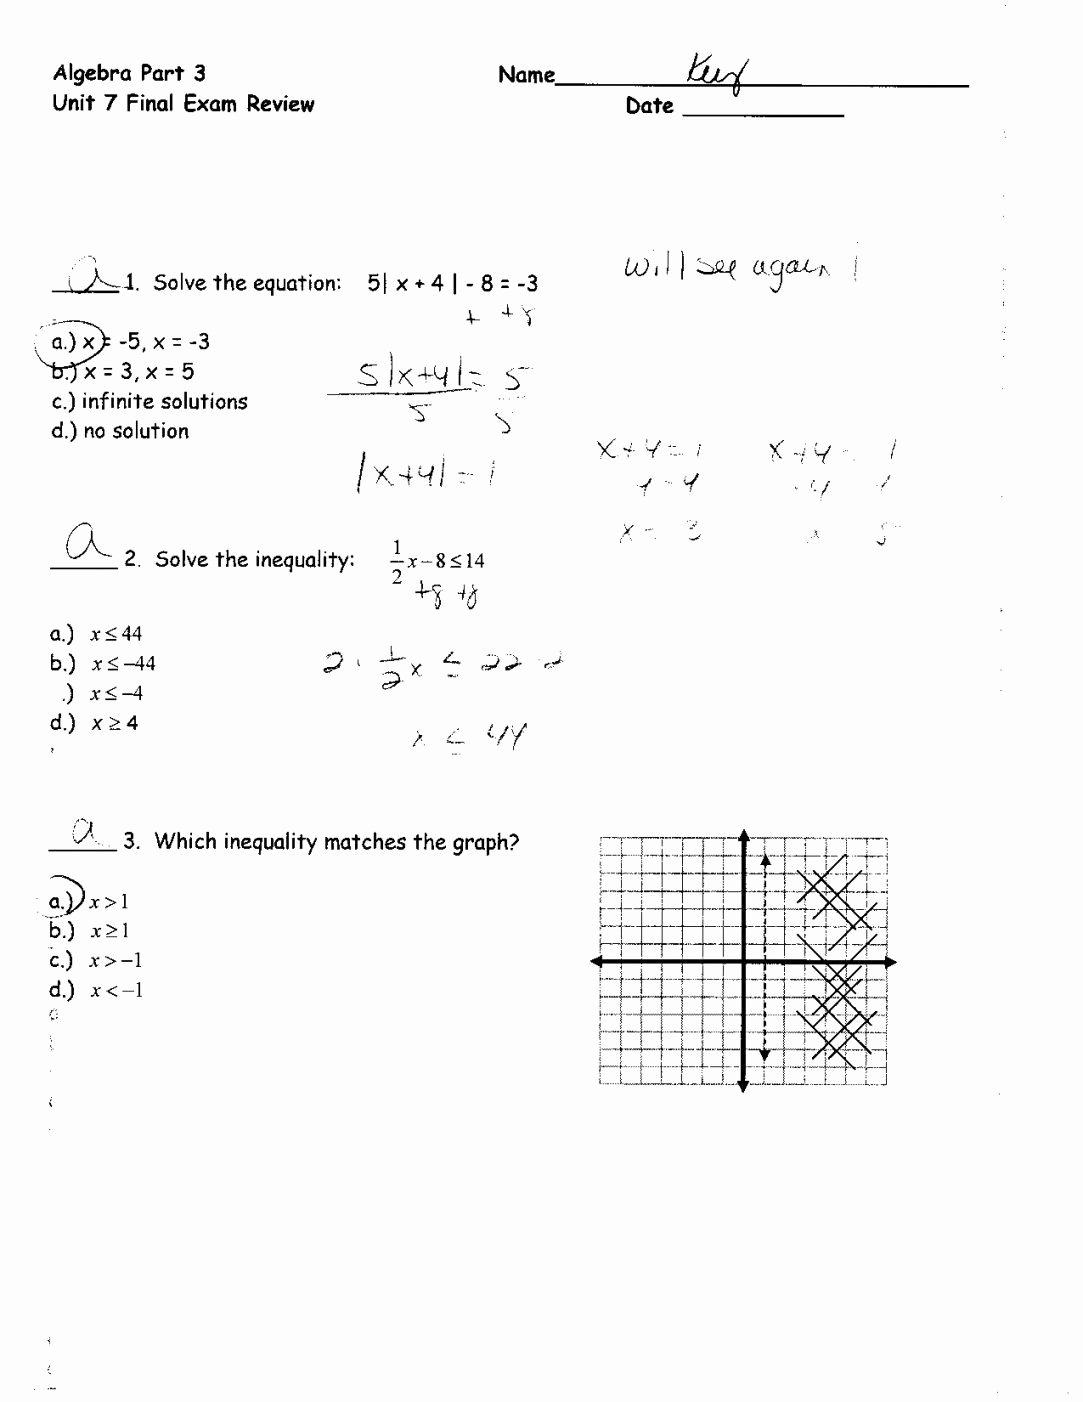 Graphing Linear Equations Worksheet Beautiful Graphing Linear Equations Worksheet Algebra 1